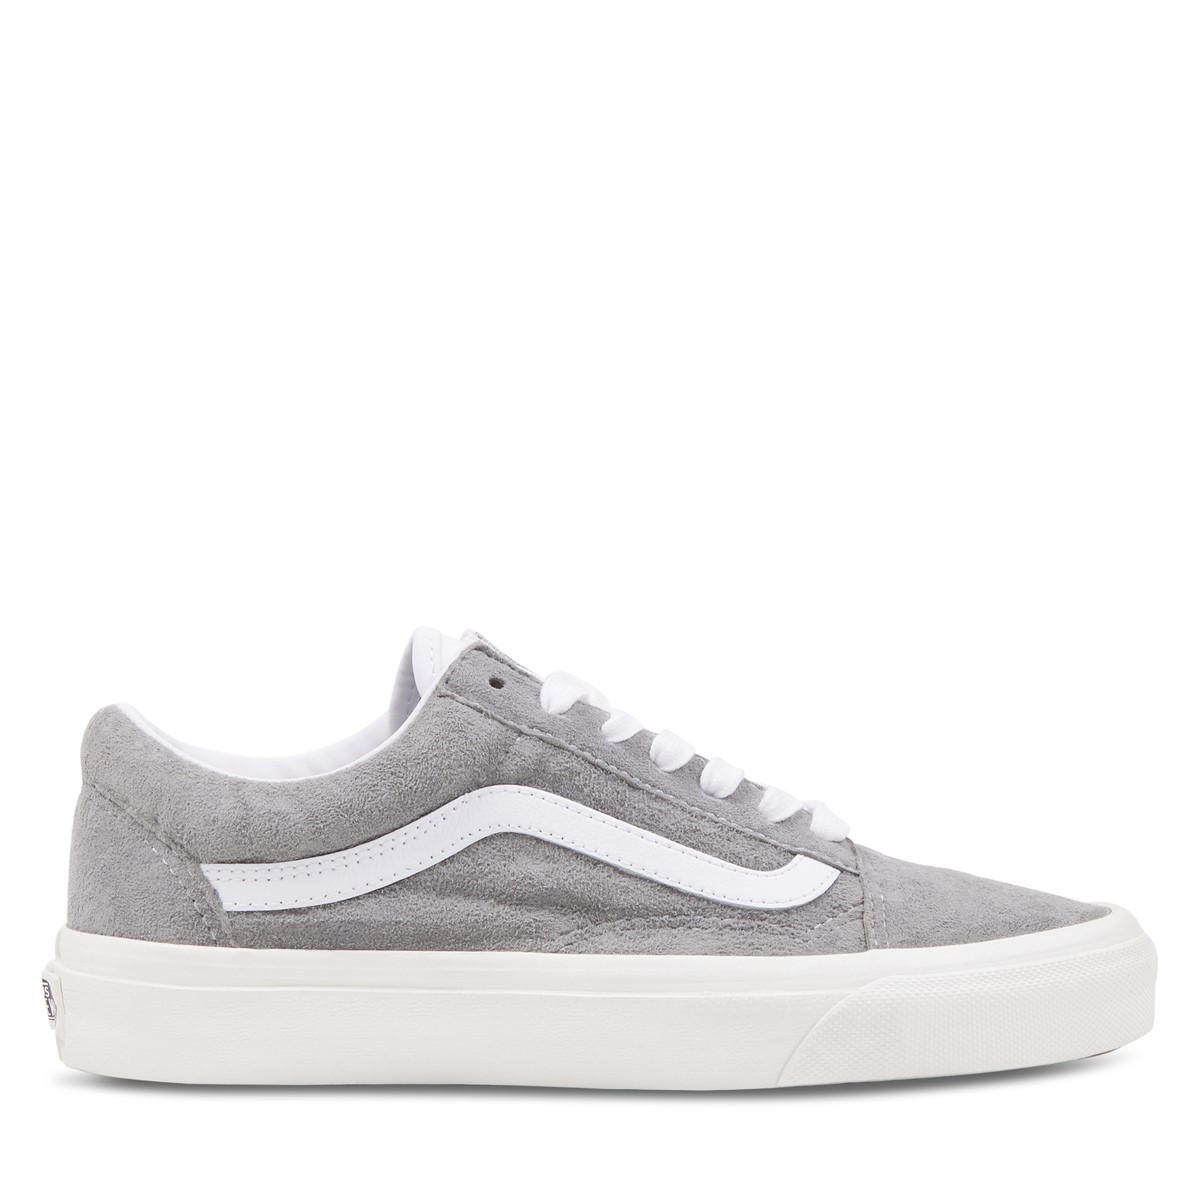 Women's Old Skool Sneakers in Grey